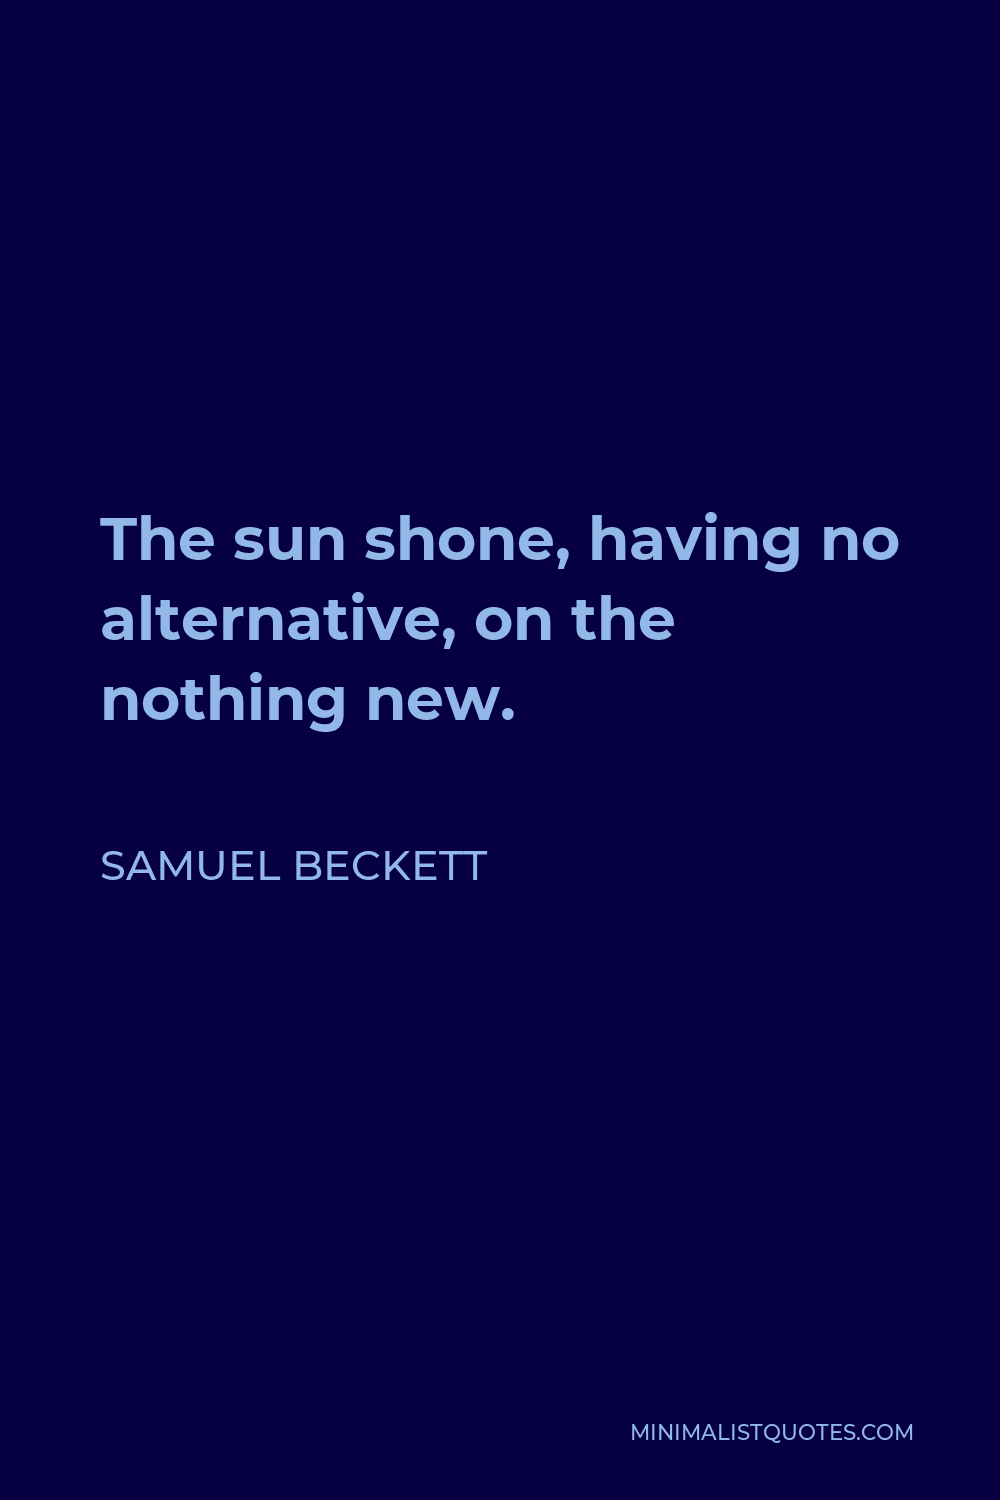 Samuel Beckett Quote - The sun shone, having no alternative, on the nothing new.